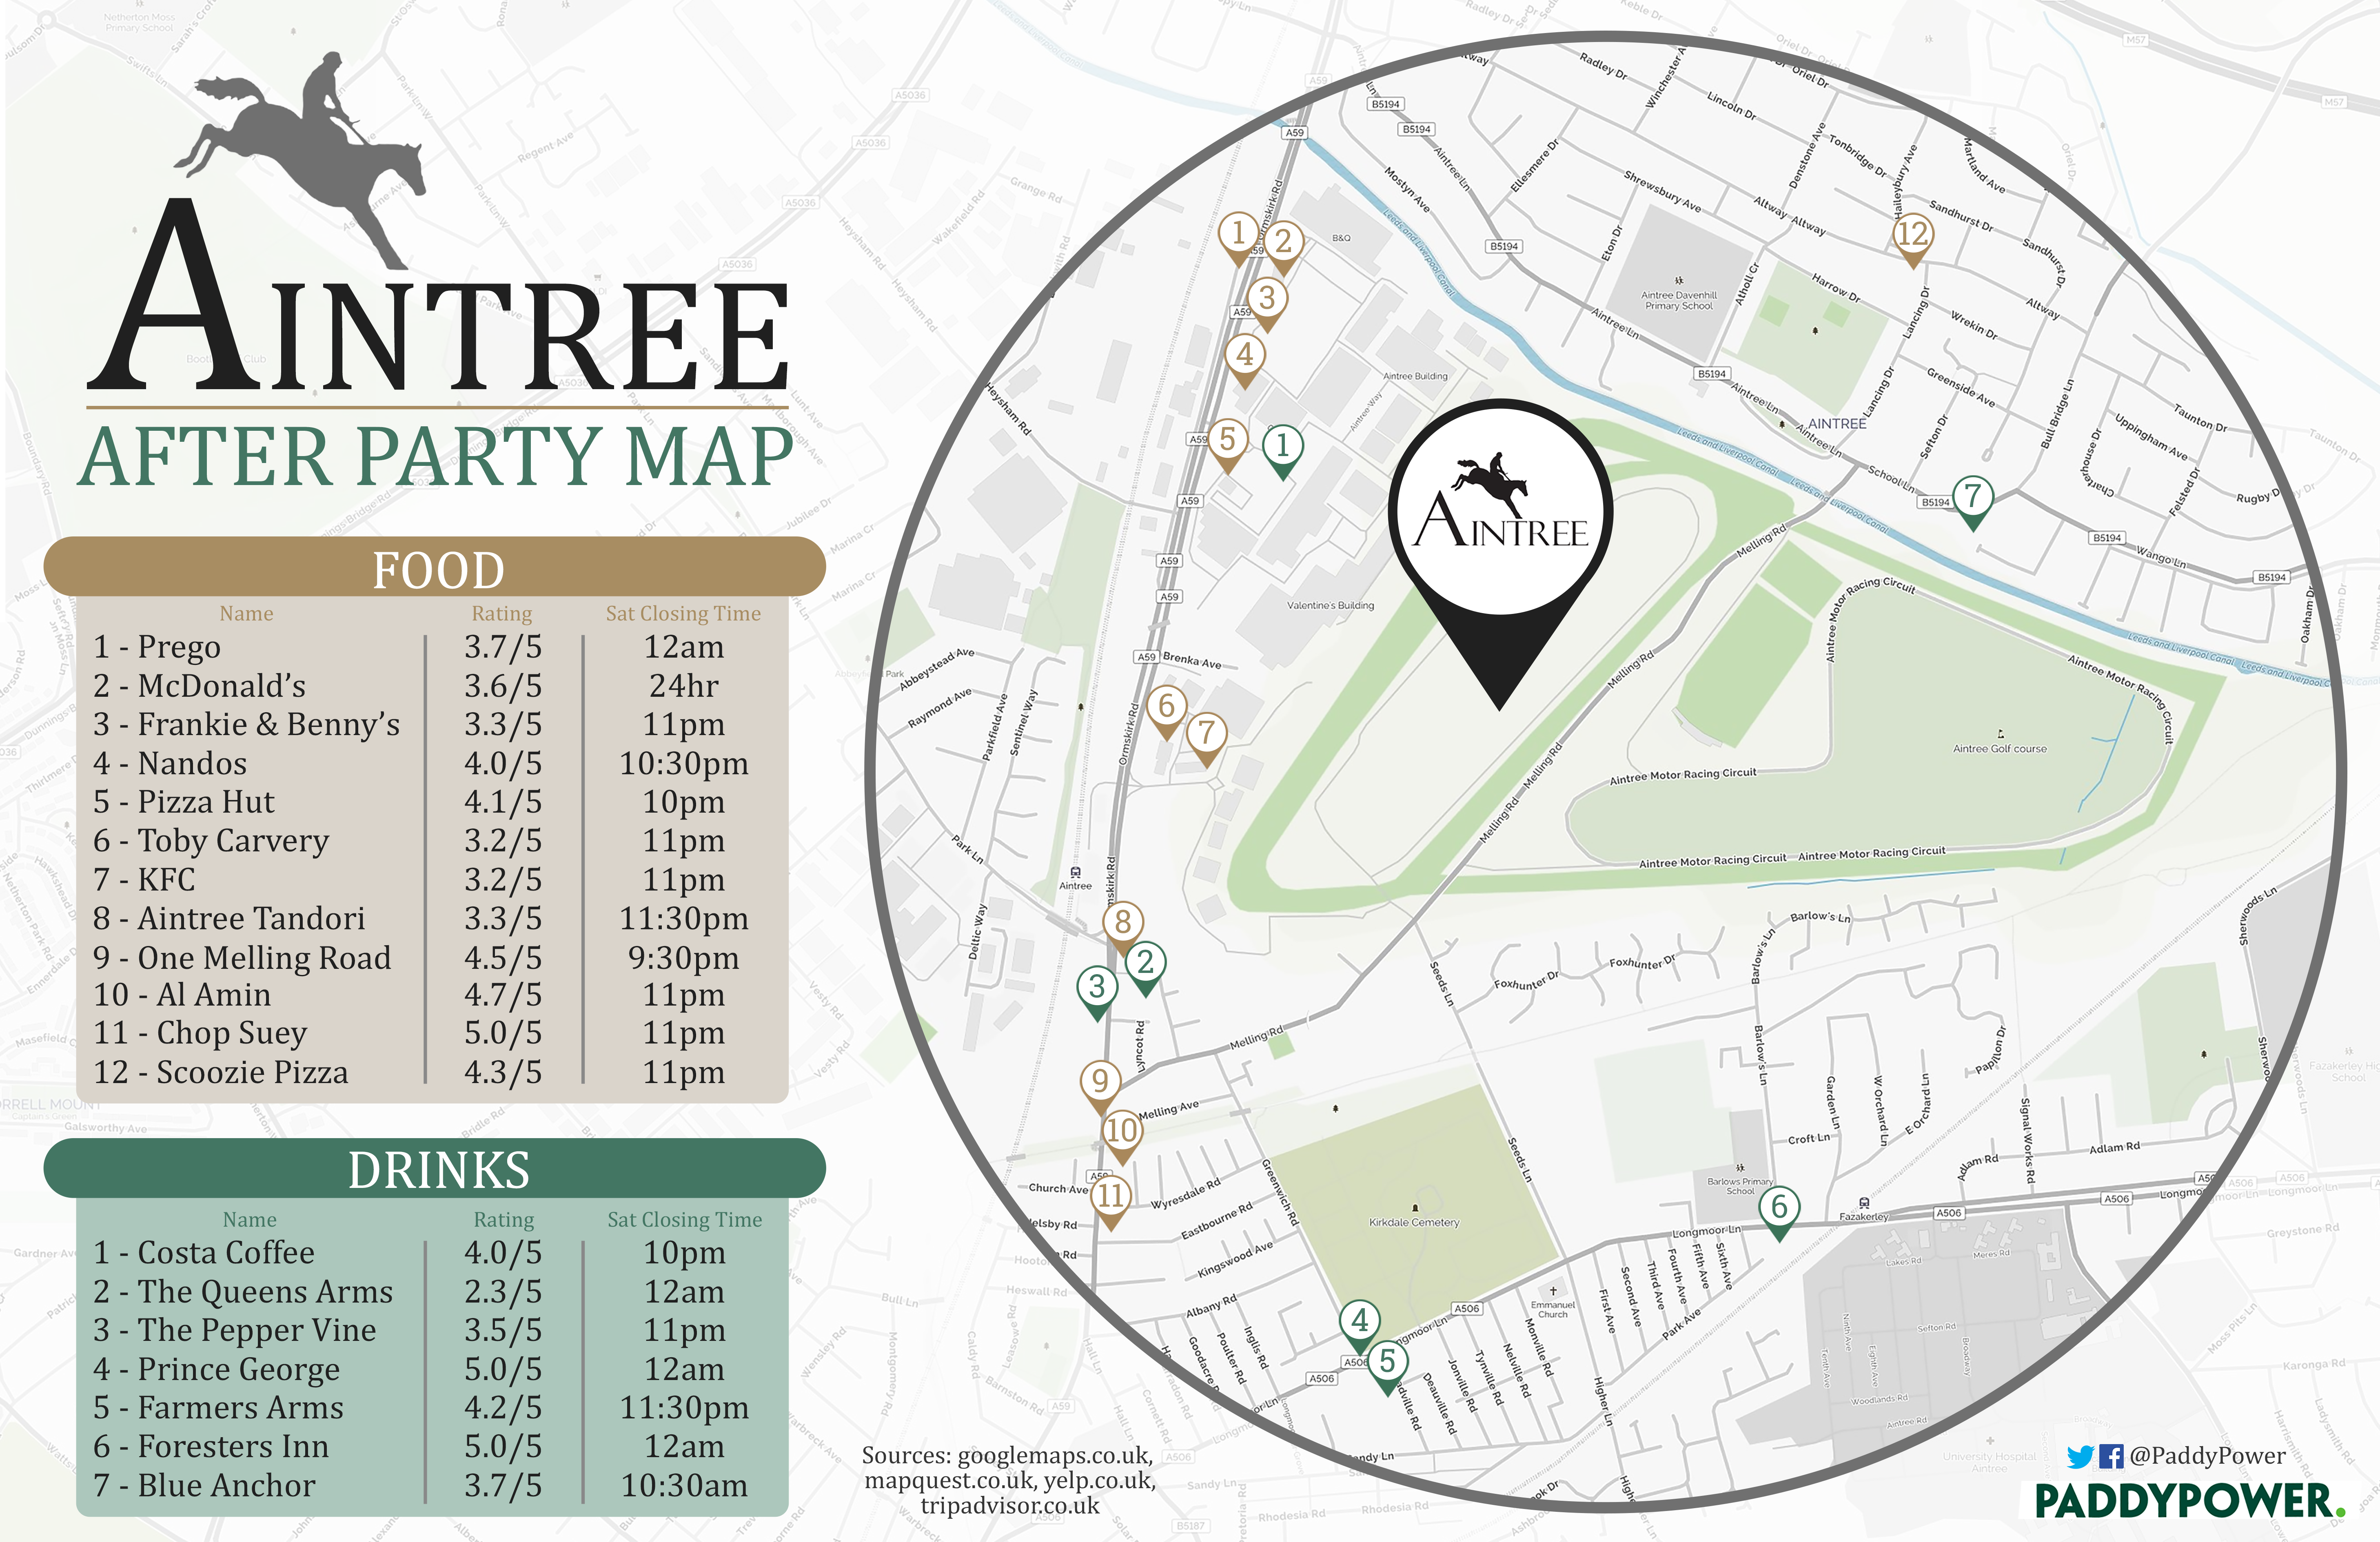 Aintree After Party Map – Infographic